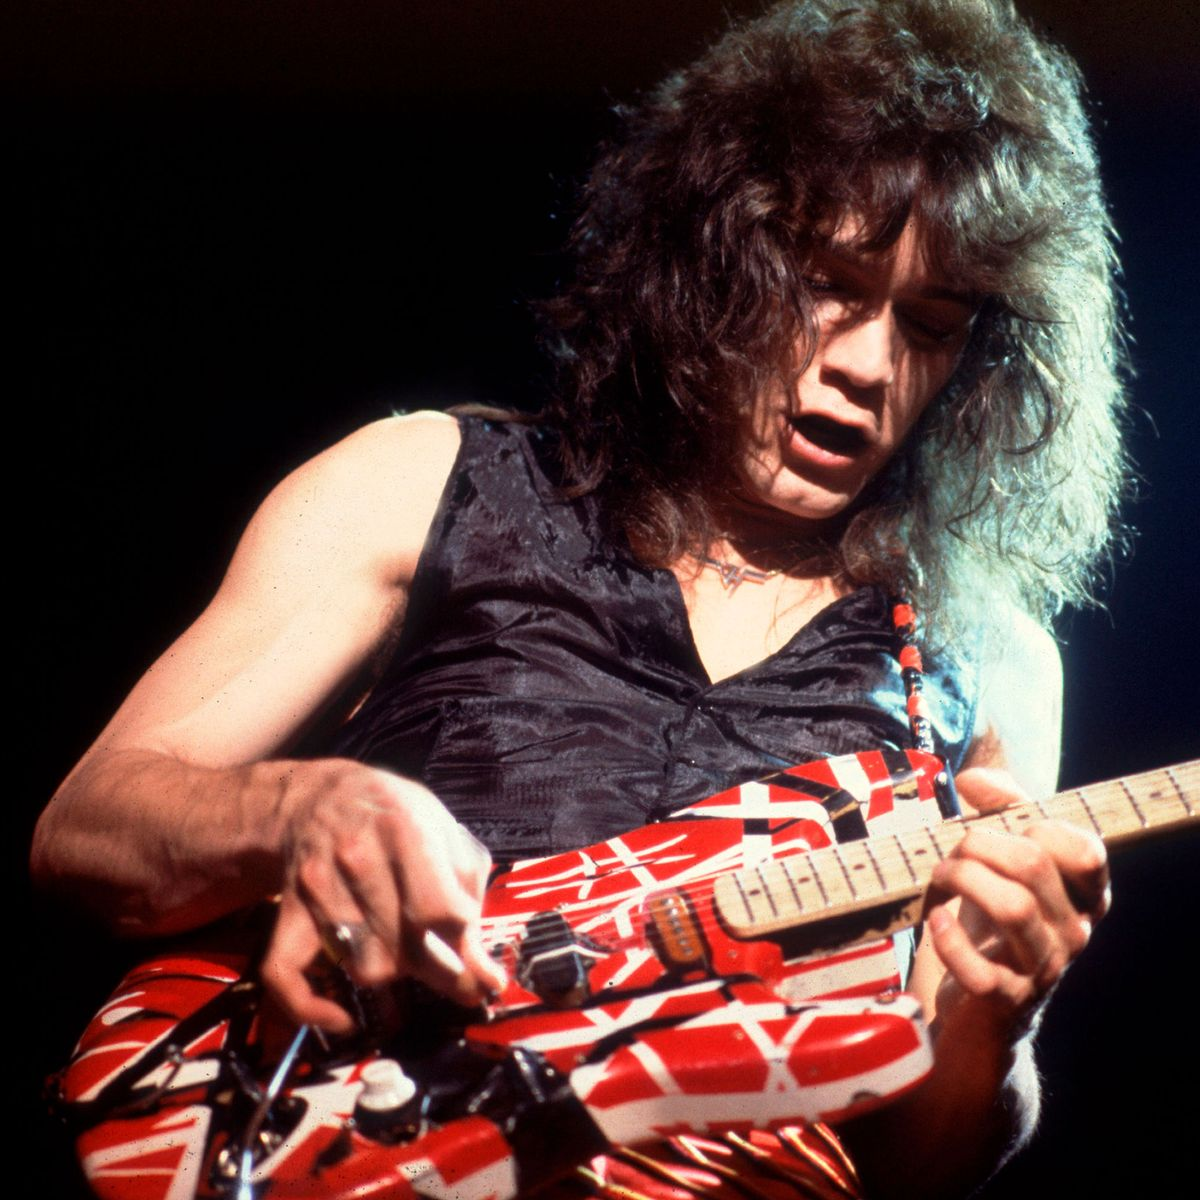 Obituary: Eddie Van Halen Dead at 65